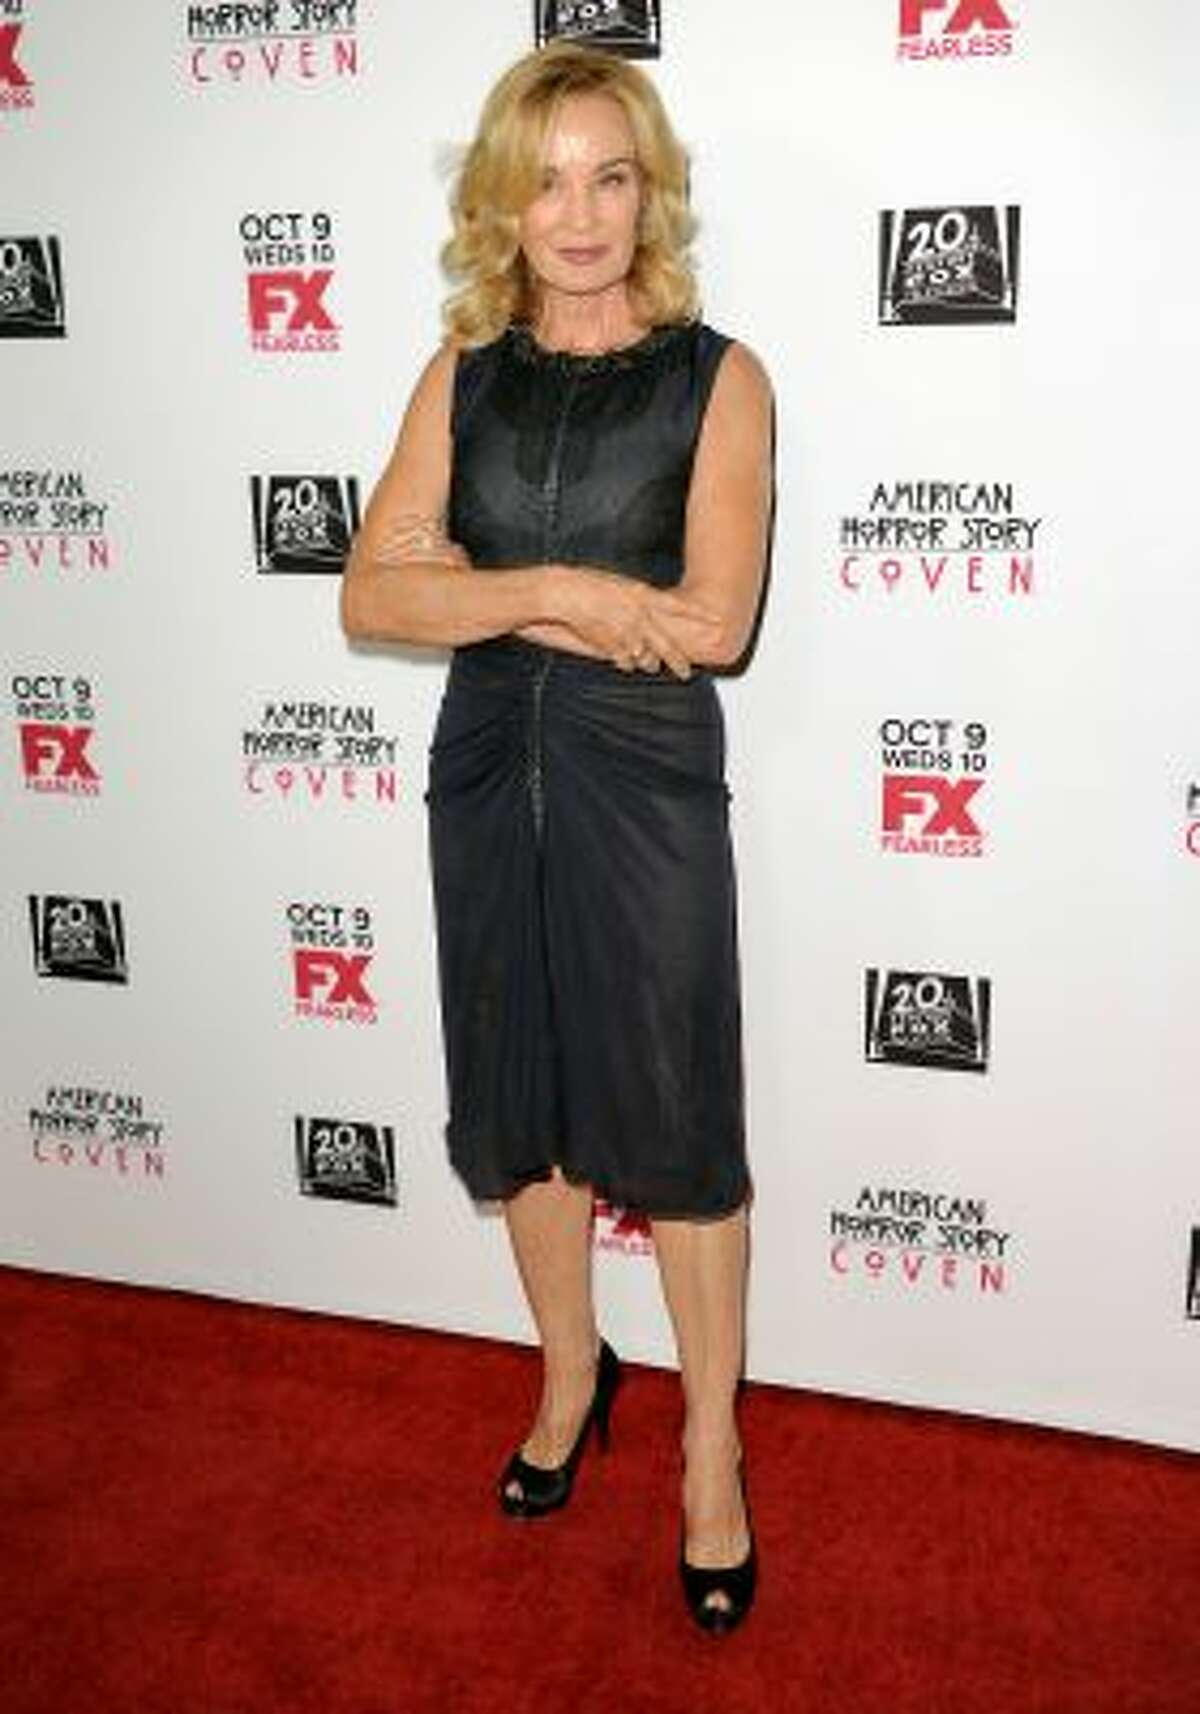 """Jessica Lange arrives at the premiere screening of """"American Horror Story: Coven"""" at the Pacific Design Center on Saturday, Oct. 5, 2013 in West Hollywood, Calif."""